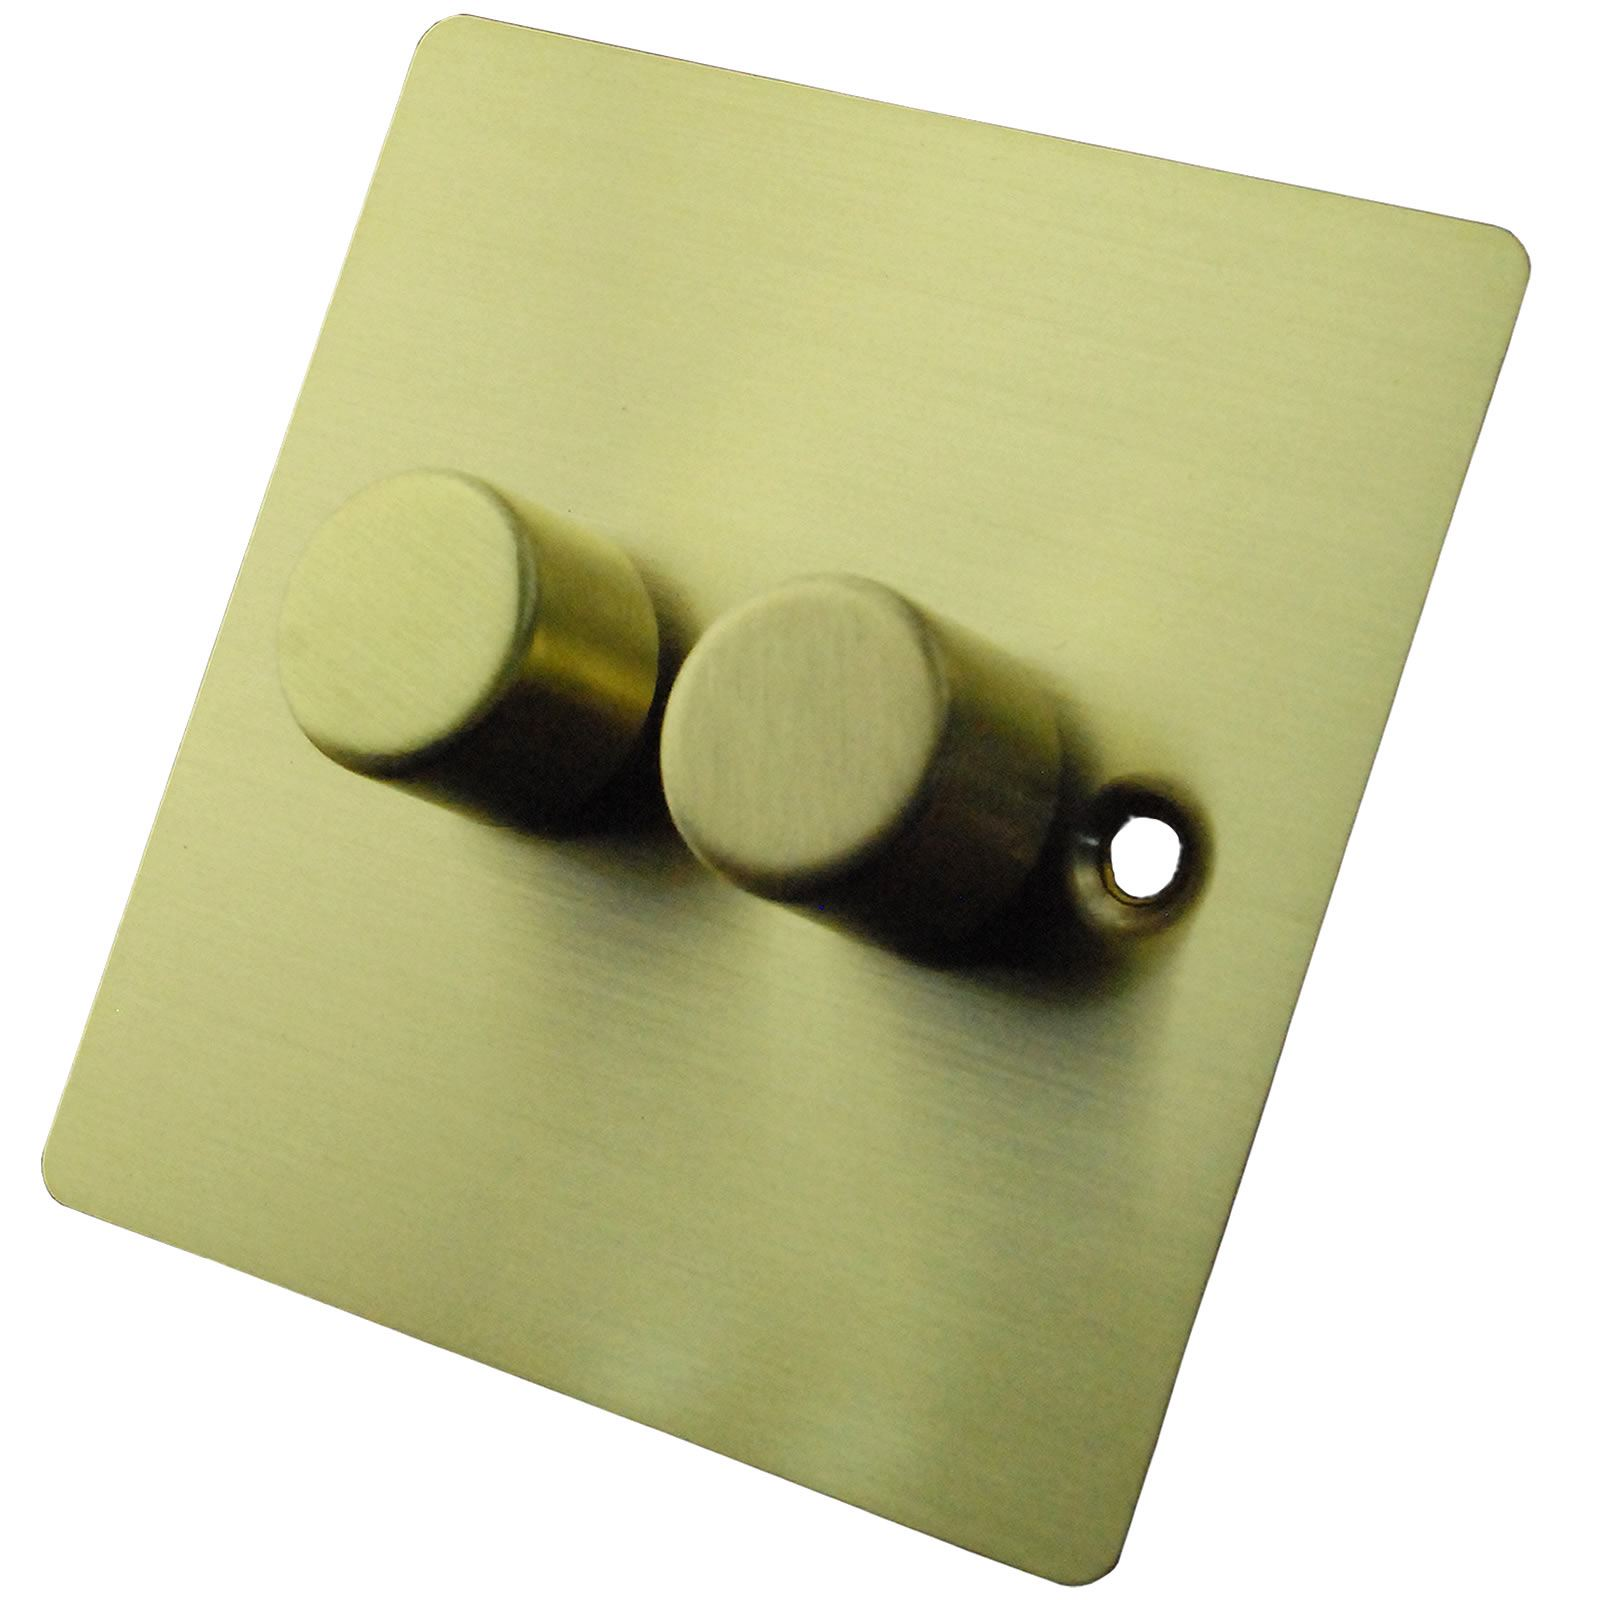 Ultra Flat Brushed Brass 2 Gang Home Dimmer Light Switch 1 Or Way Push On Off